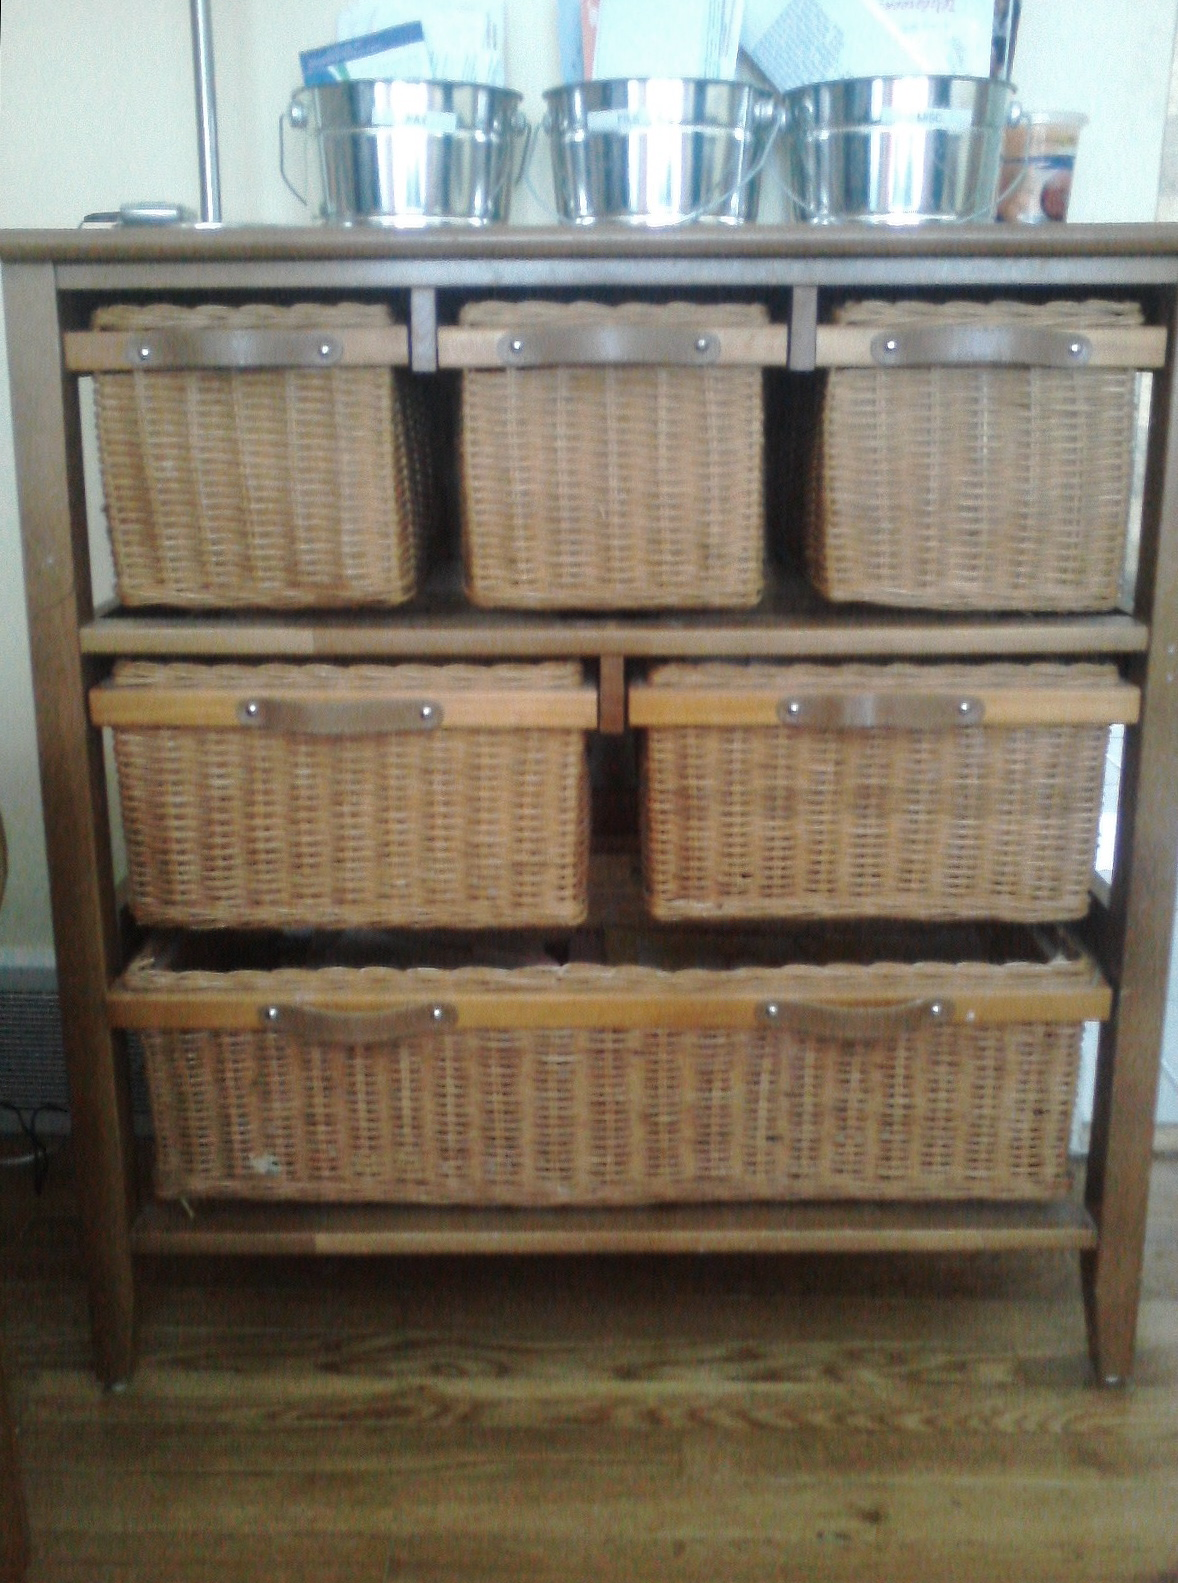 rack image dresser large is loading drawers quality florence baskets wine shelves itm with